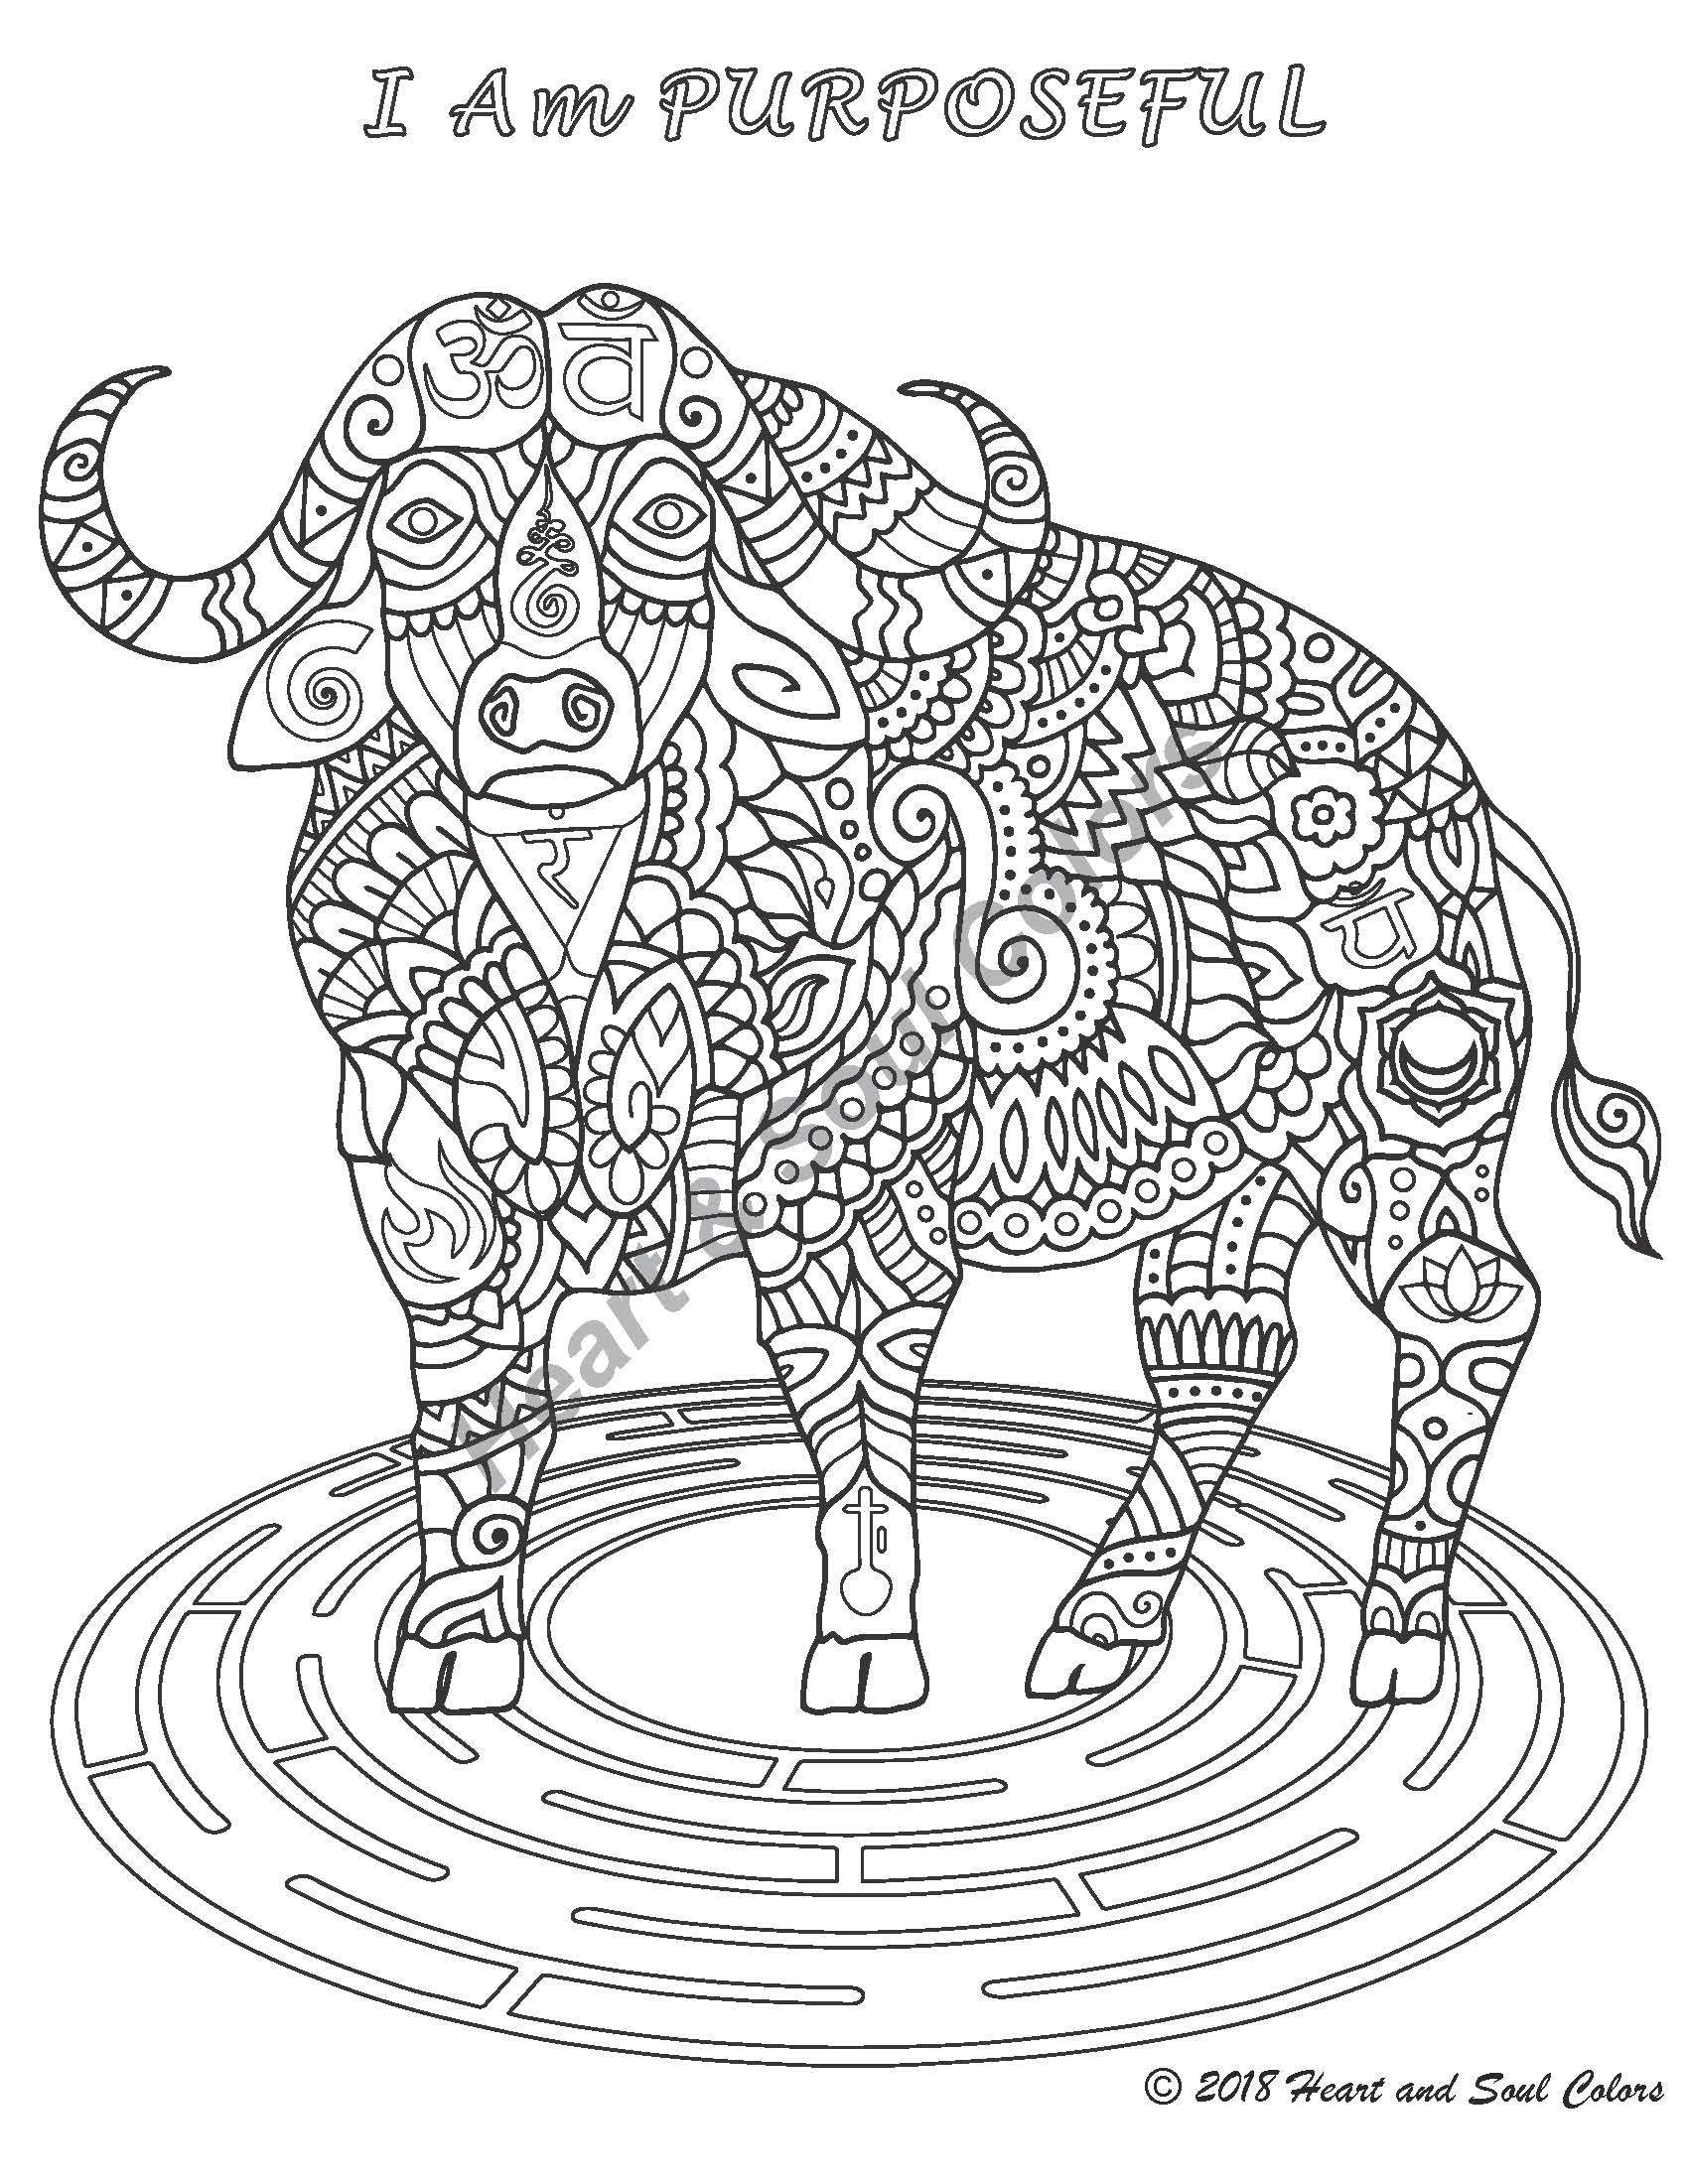 I Am PURPOSEFUL Buffalo coloring design for being in the flow of living our life purpose